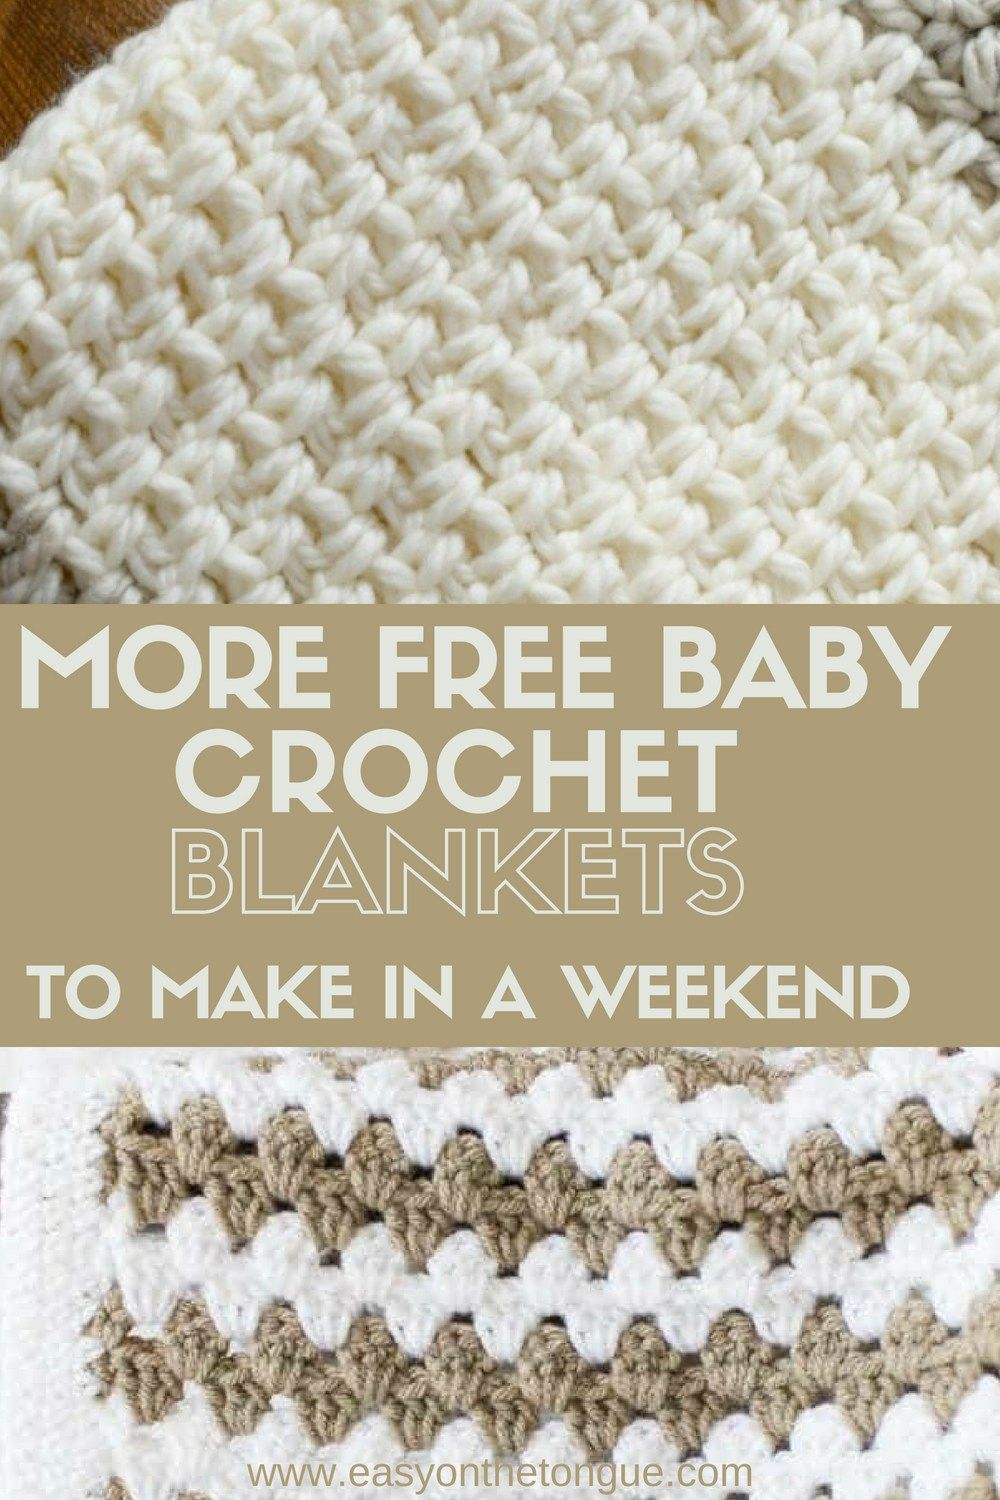 More Free Baby Crochet Blanket Patterns to do in a weekend | DIY ...